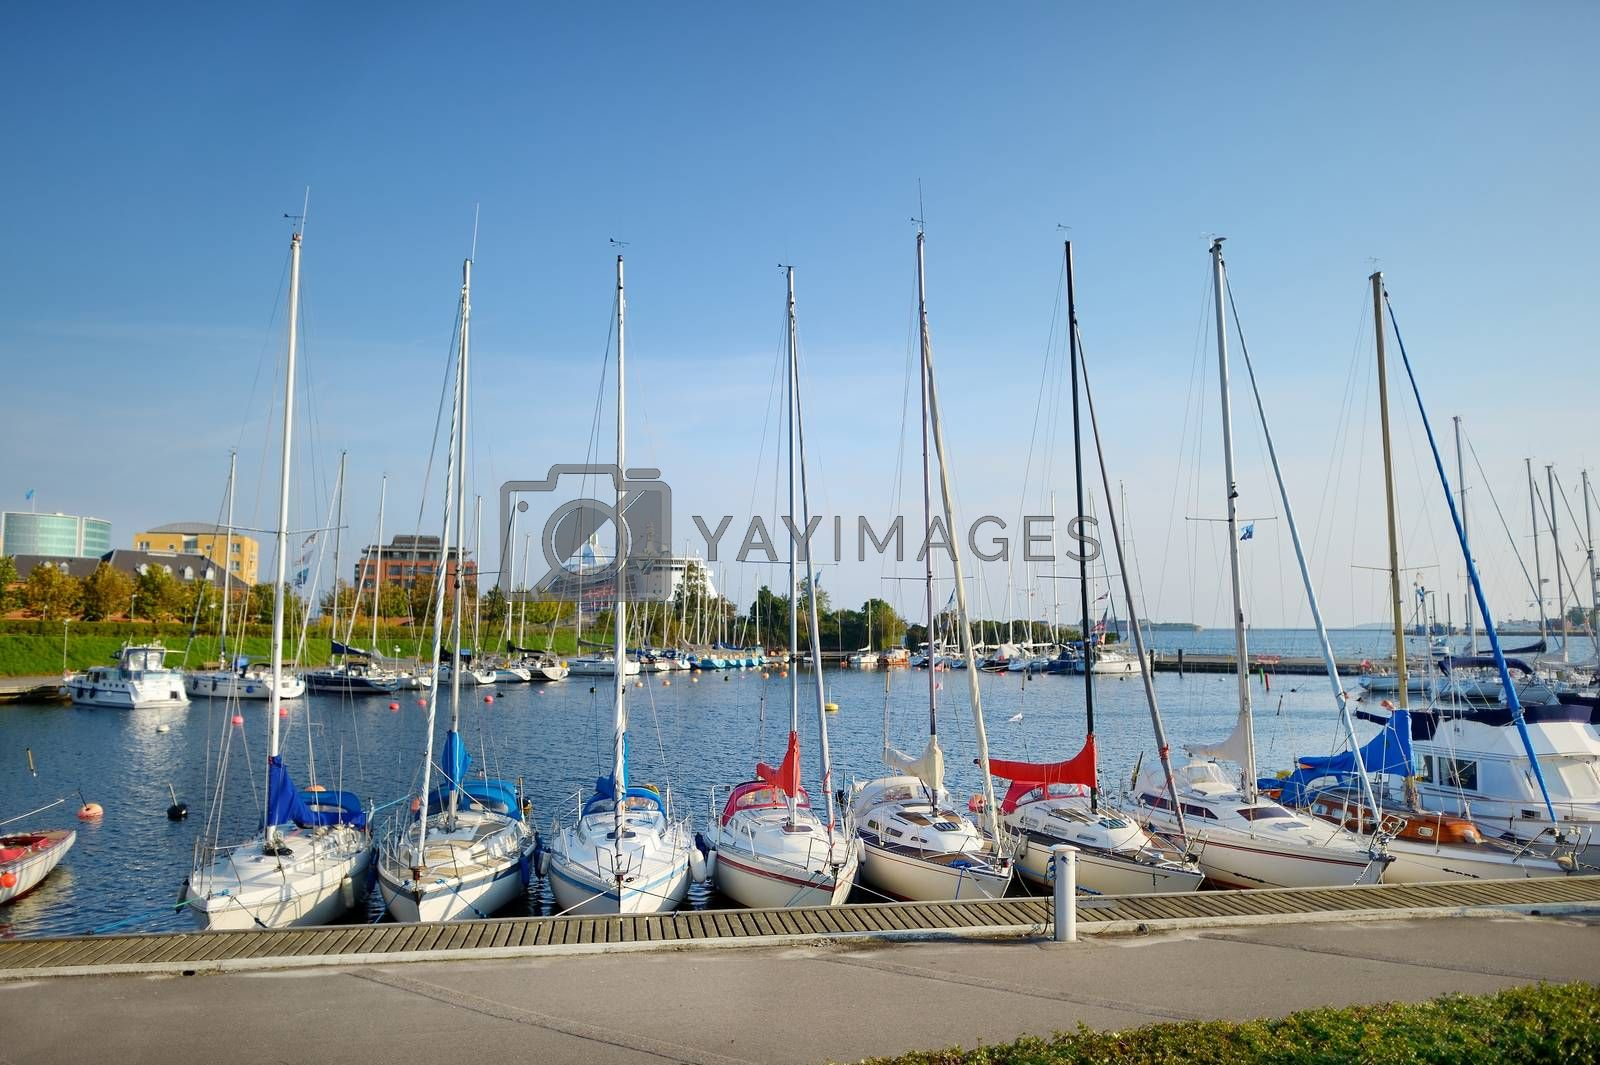 Yachts and boats in marina of Copenhagen